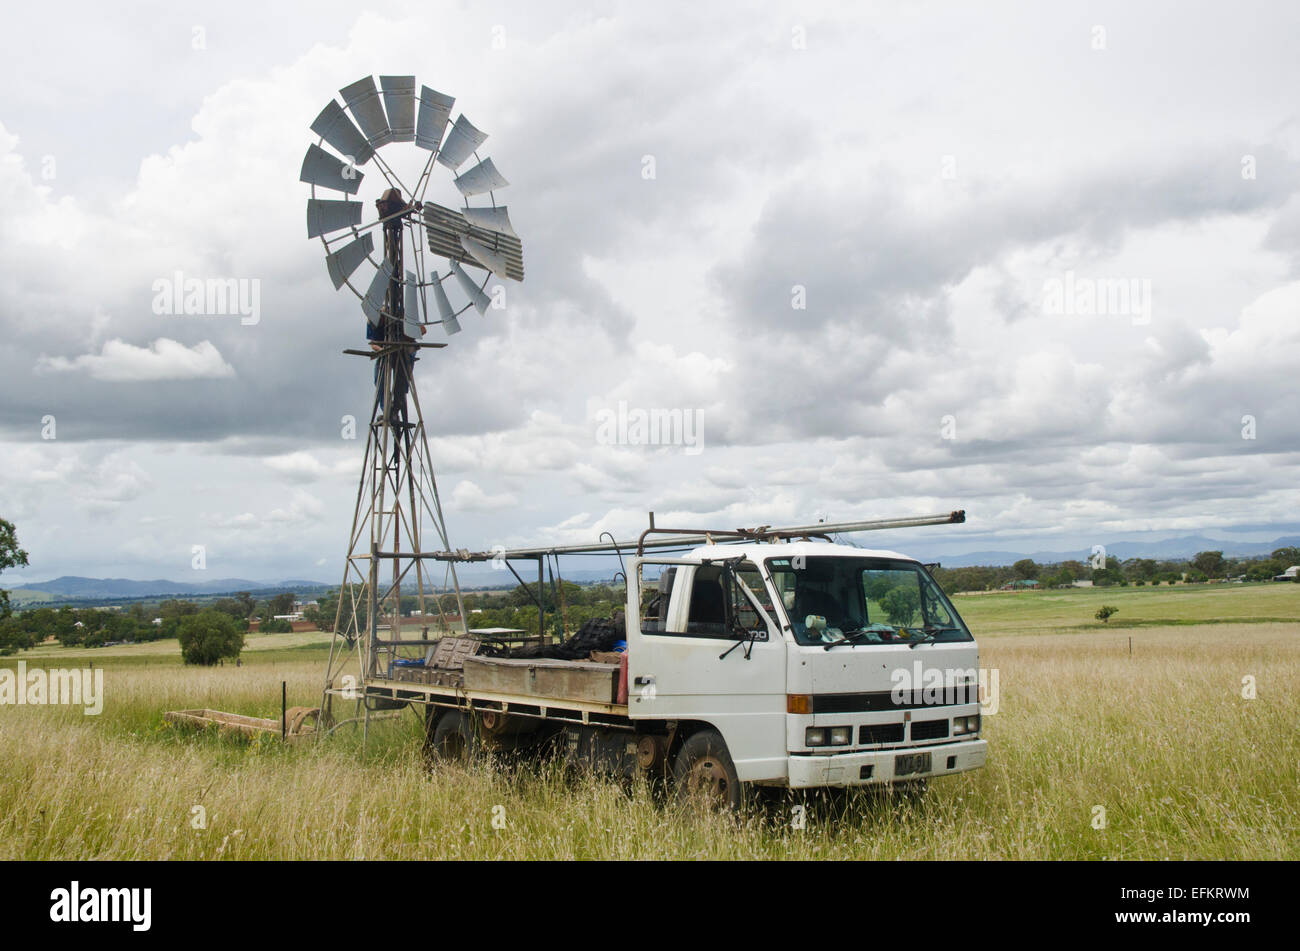 Repairman working on a rural windmill. - Stock Image